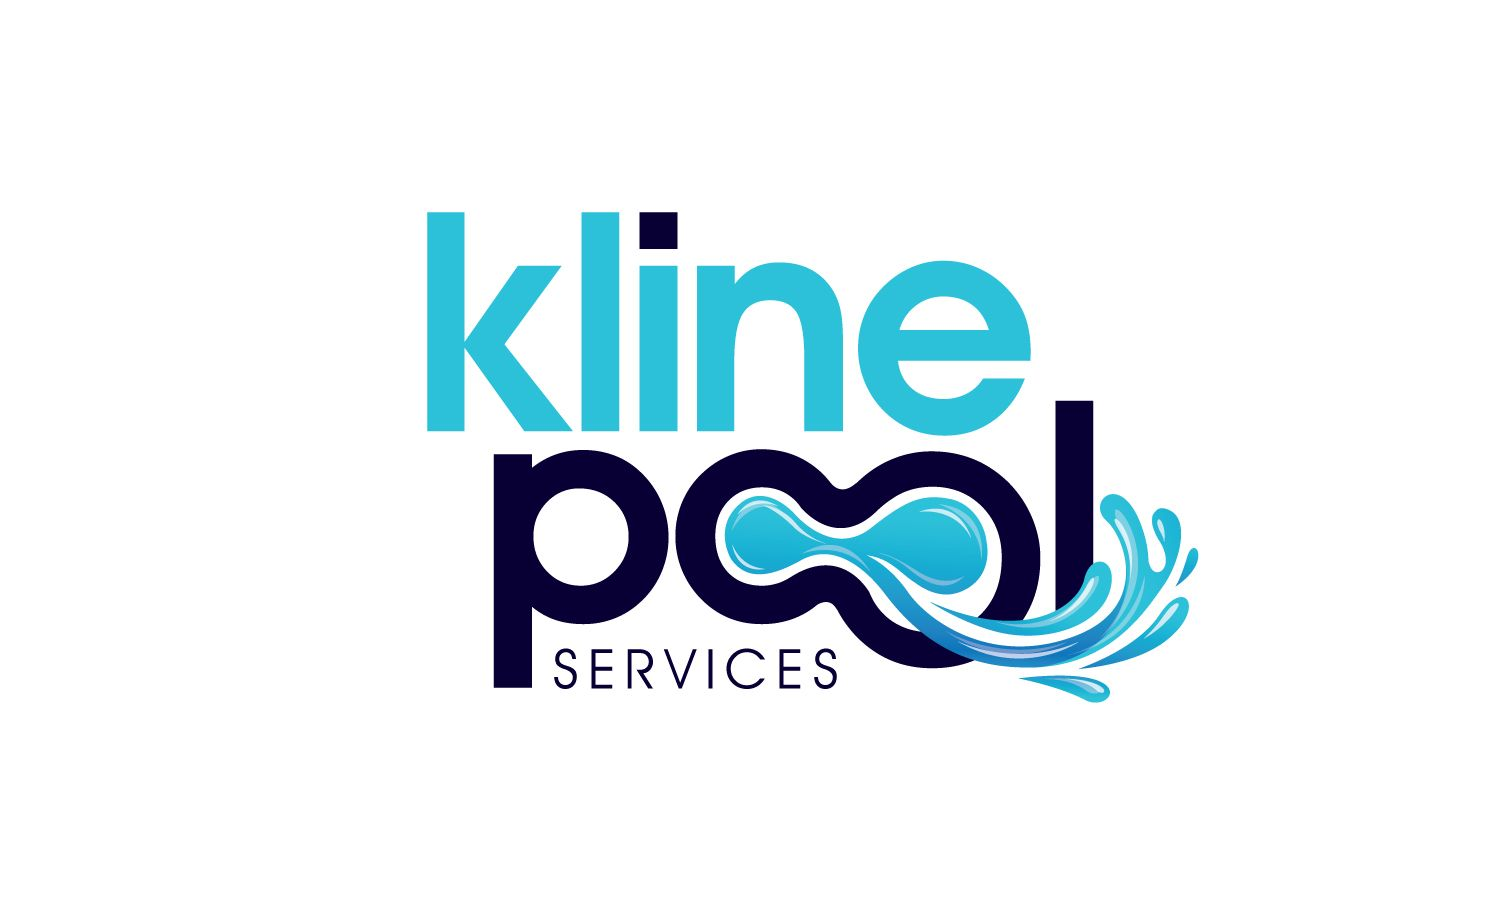 Swimming Pool Service Company Looking For A Log... Modern, Serious Logo  Design By Designguru